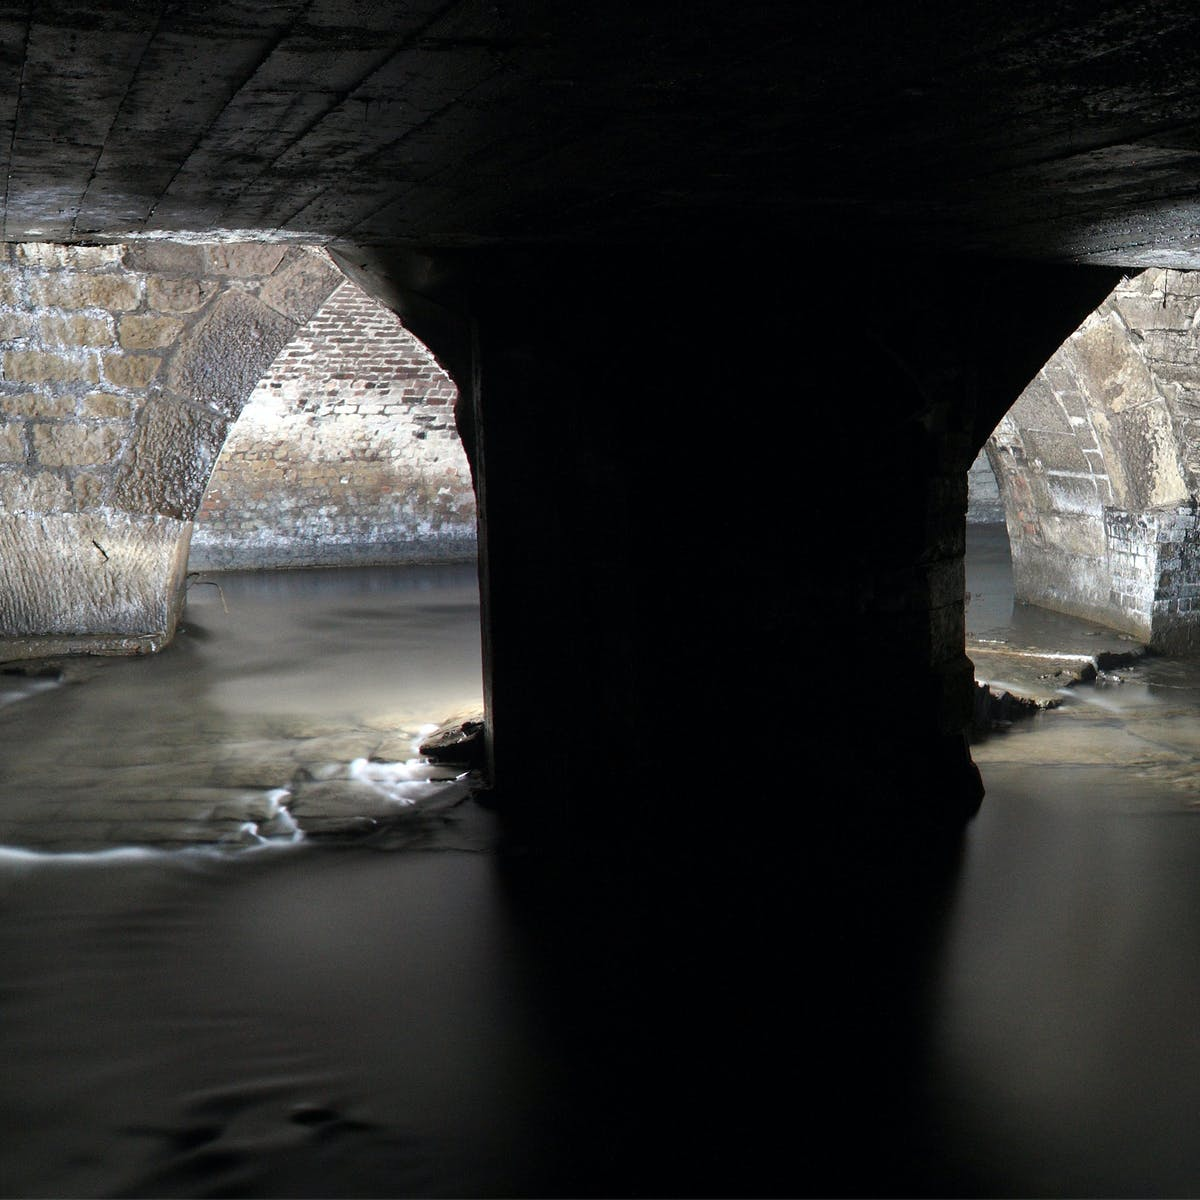 Many urban rivers are hidden underground – 'daylighting